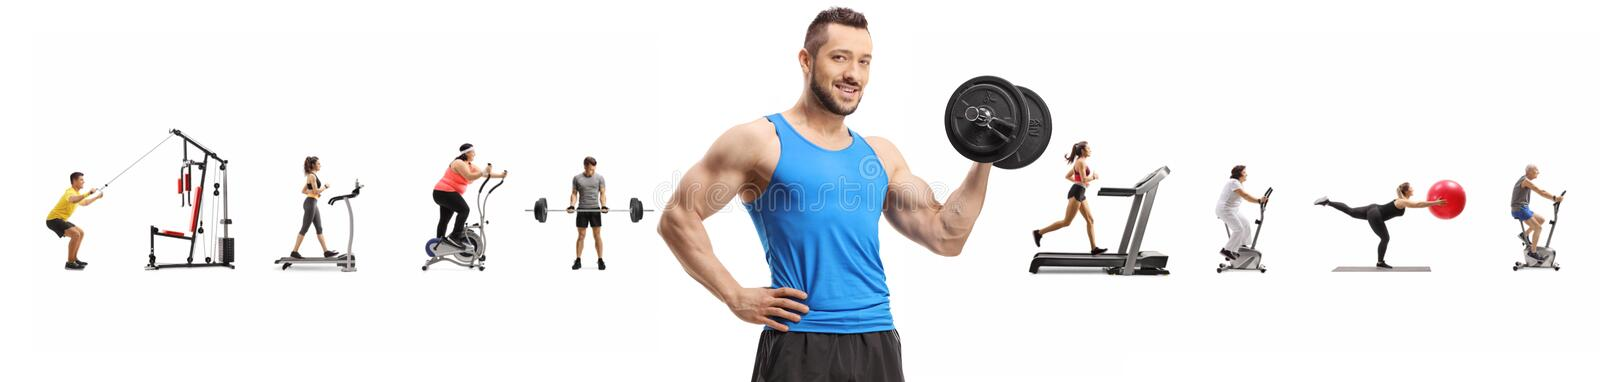 Muscular guy lifting weights and many people exercising in the background royalty free stock images